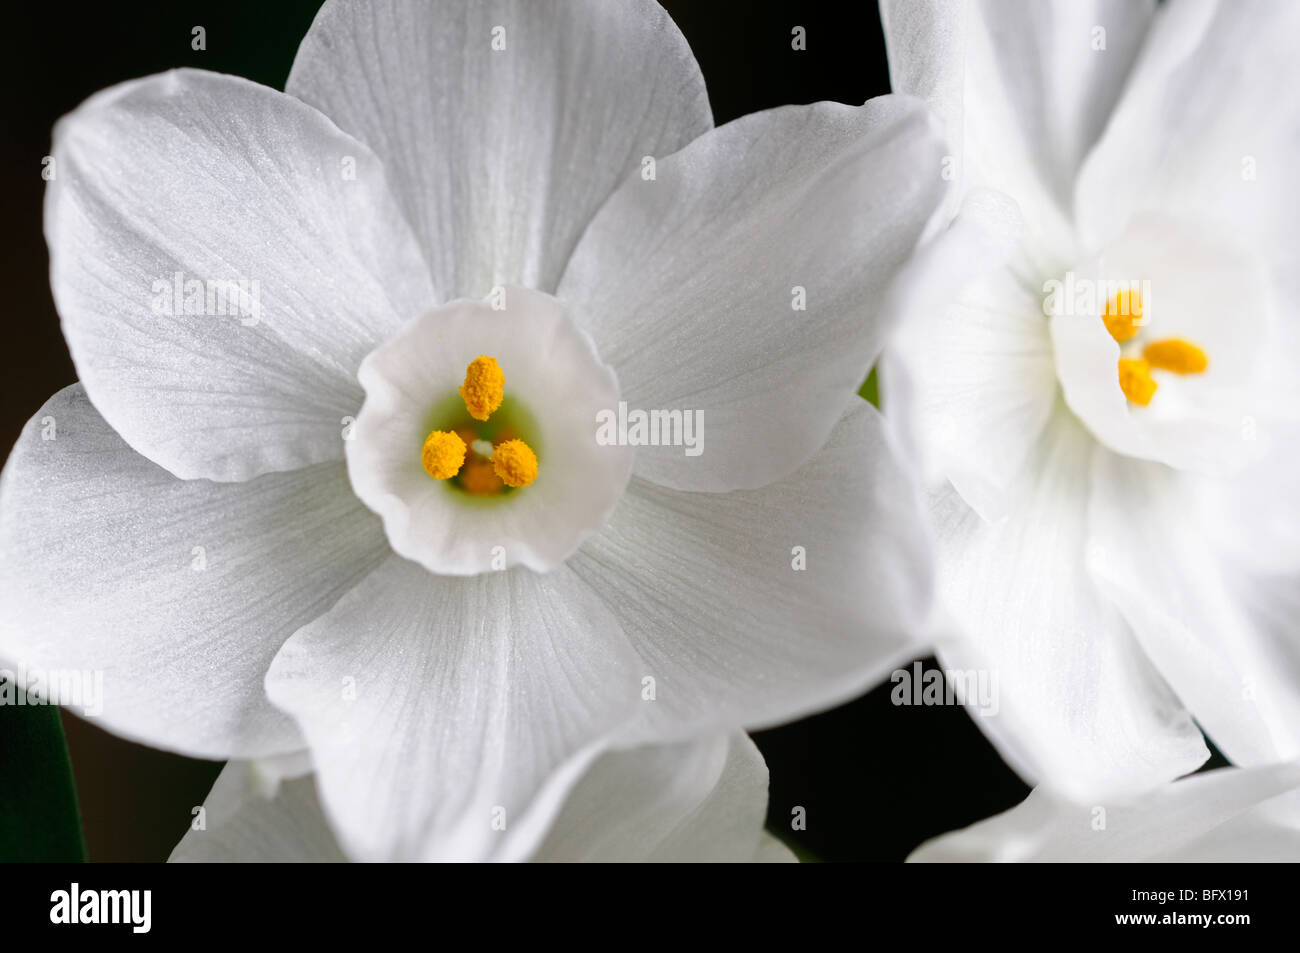 Narcissus ziva paperwhites plants white flowers flowering blooms narcissus ziva paperwhites plants white flowers flowering blooms bulbs spring scented fragrant daffodils paperwhite rm floral mightylinksfo